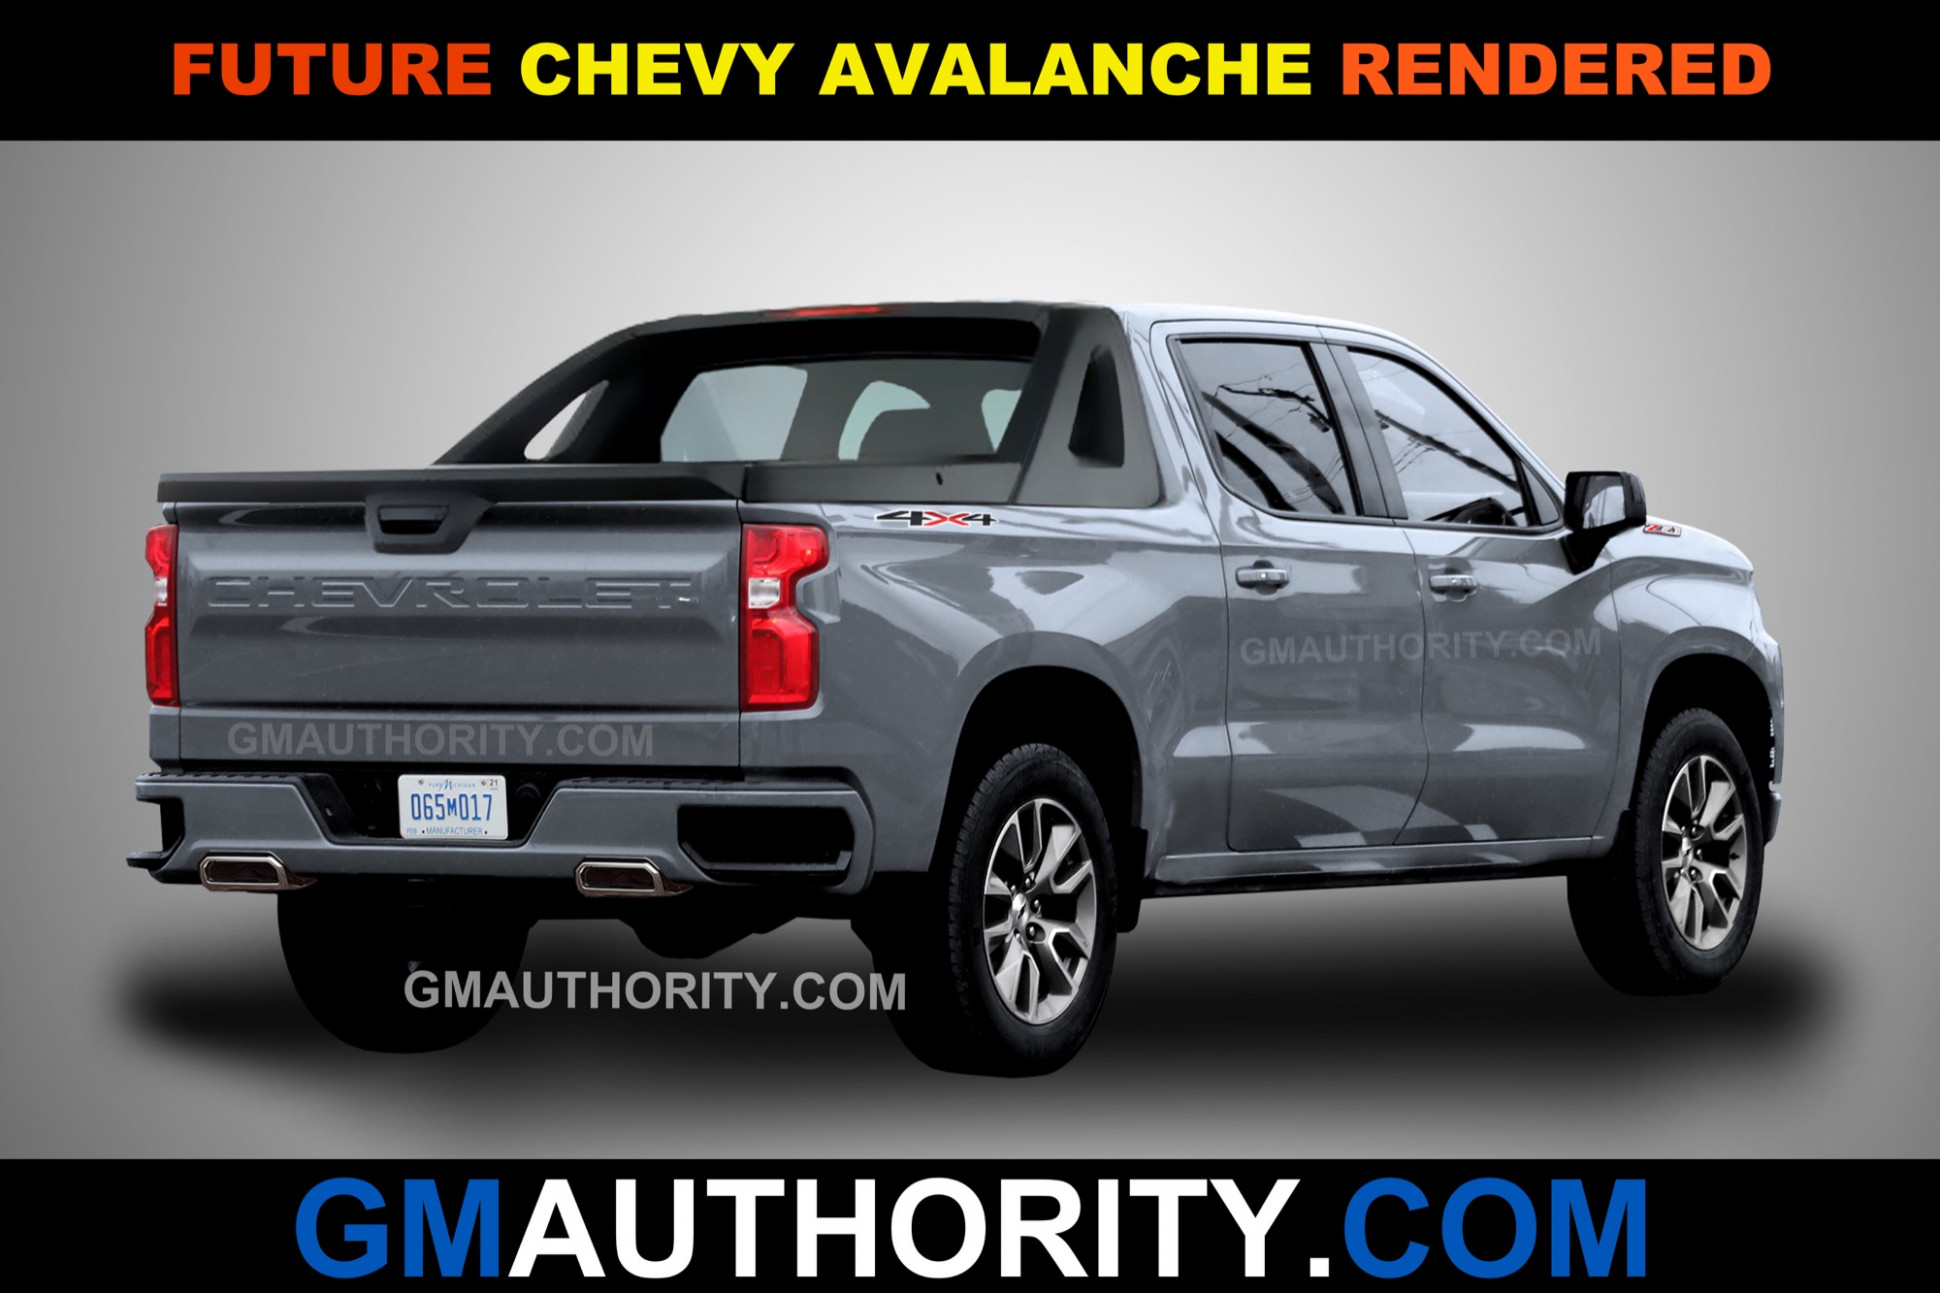 Style Chevrolet Avalanche 2022